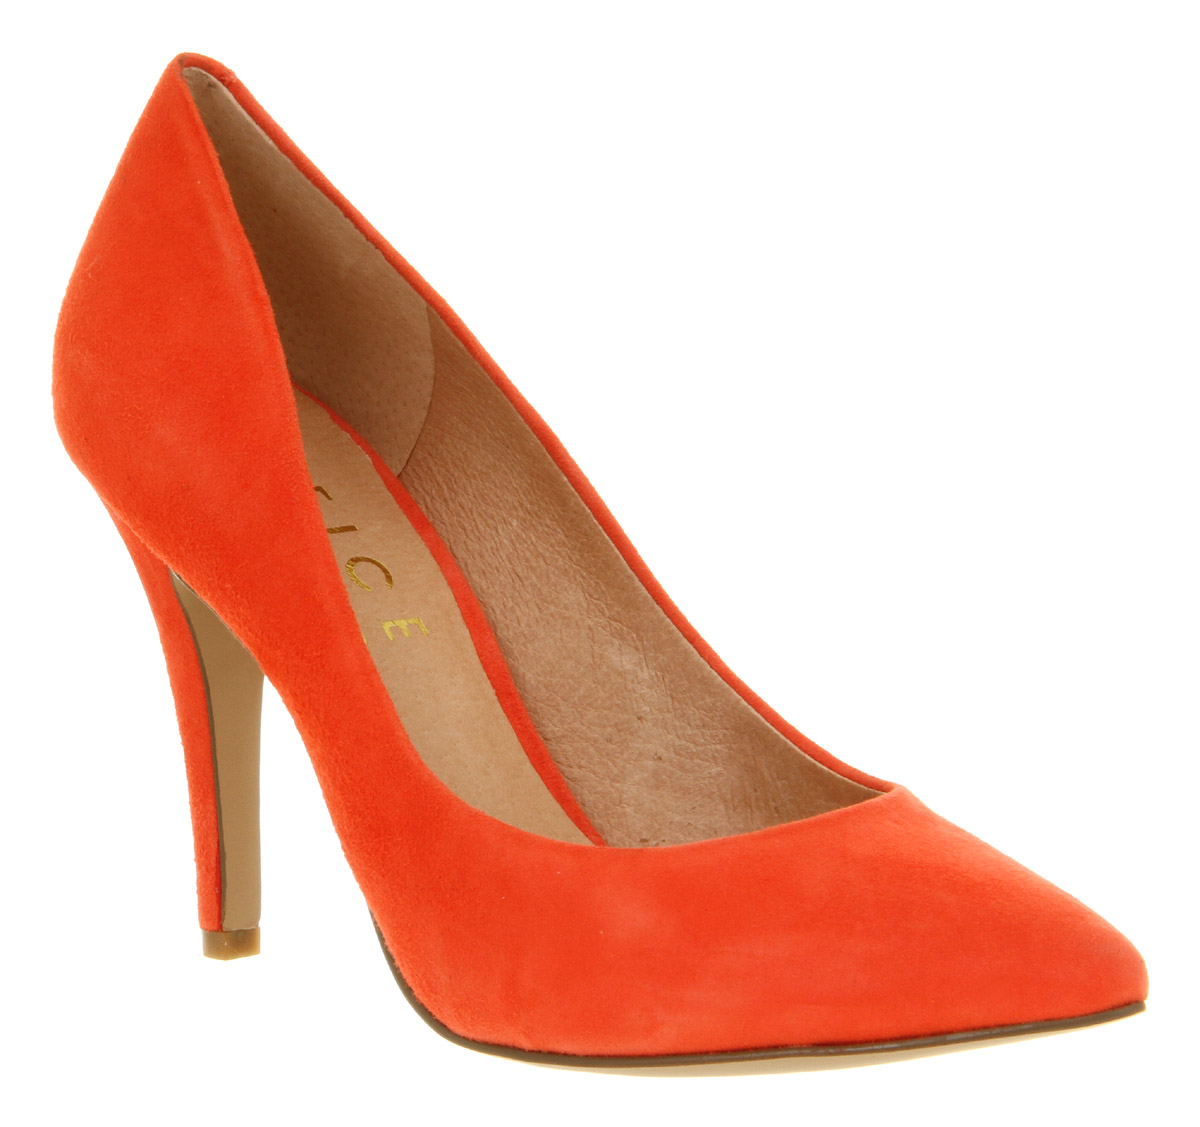 Orange Court Shoes Uk